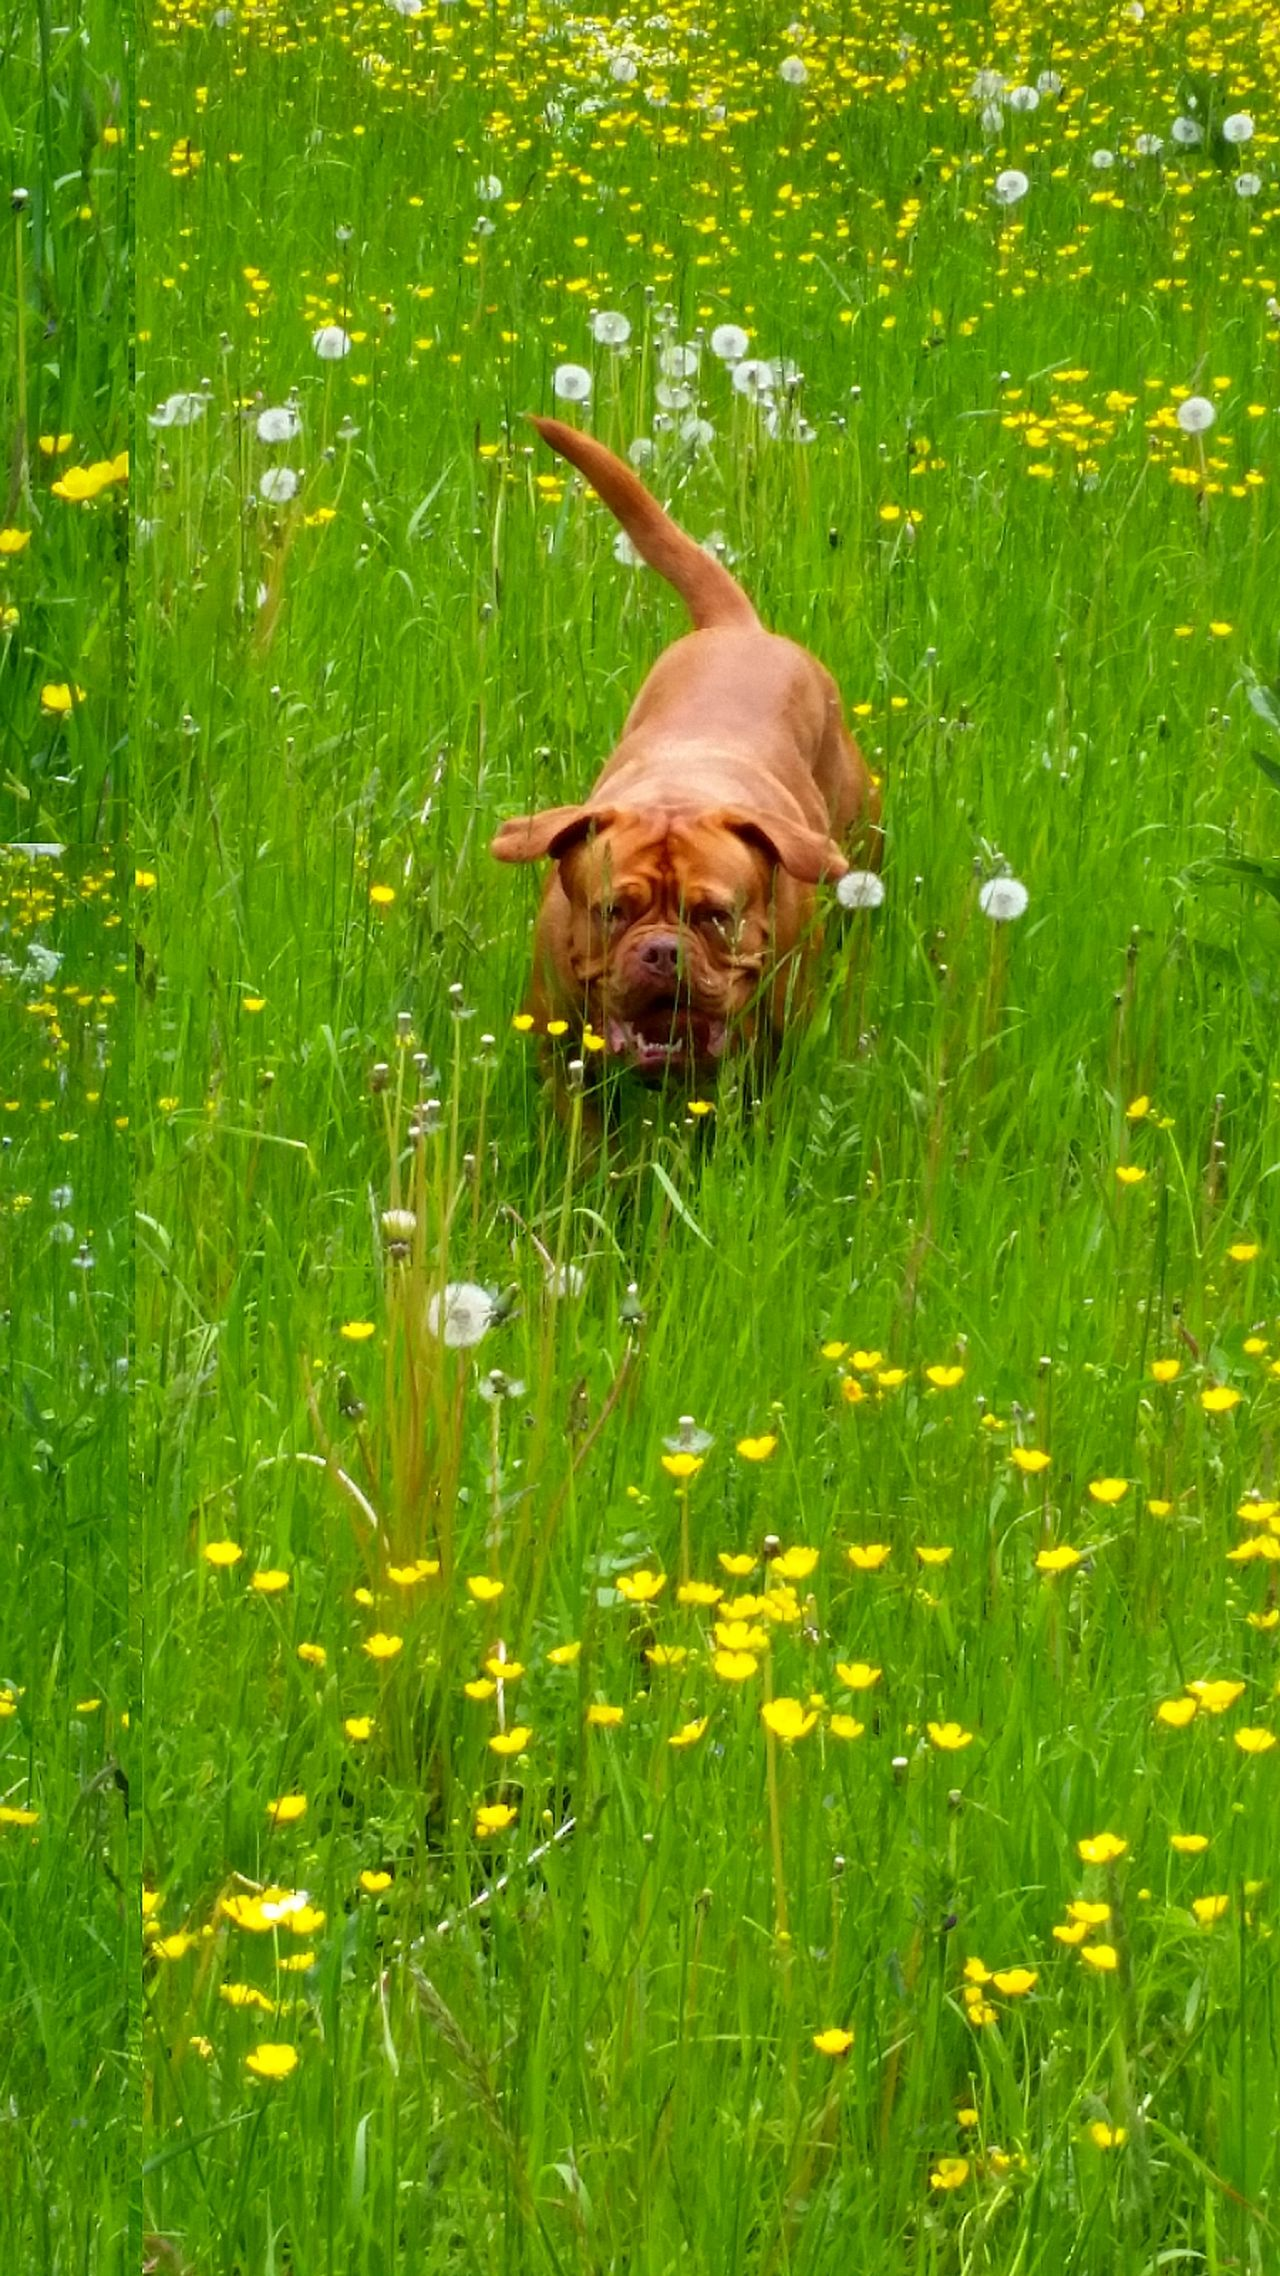 Dogs Bordeauxdog Spring Has Arrived Spring Flower Collection Dog In Field EyeEm Nature Lover Check This Out Happy Dog Running Trough The Field Dog Love Dog Of The Day Showcase February Phone Photography EyeEm Best Shots Taking Pictures Amazing Dog Field Of Flowers Running Dog Spring Flowers Springtime